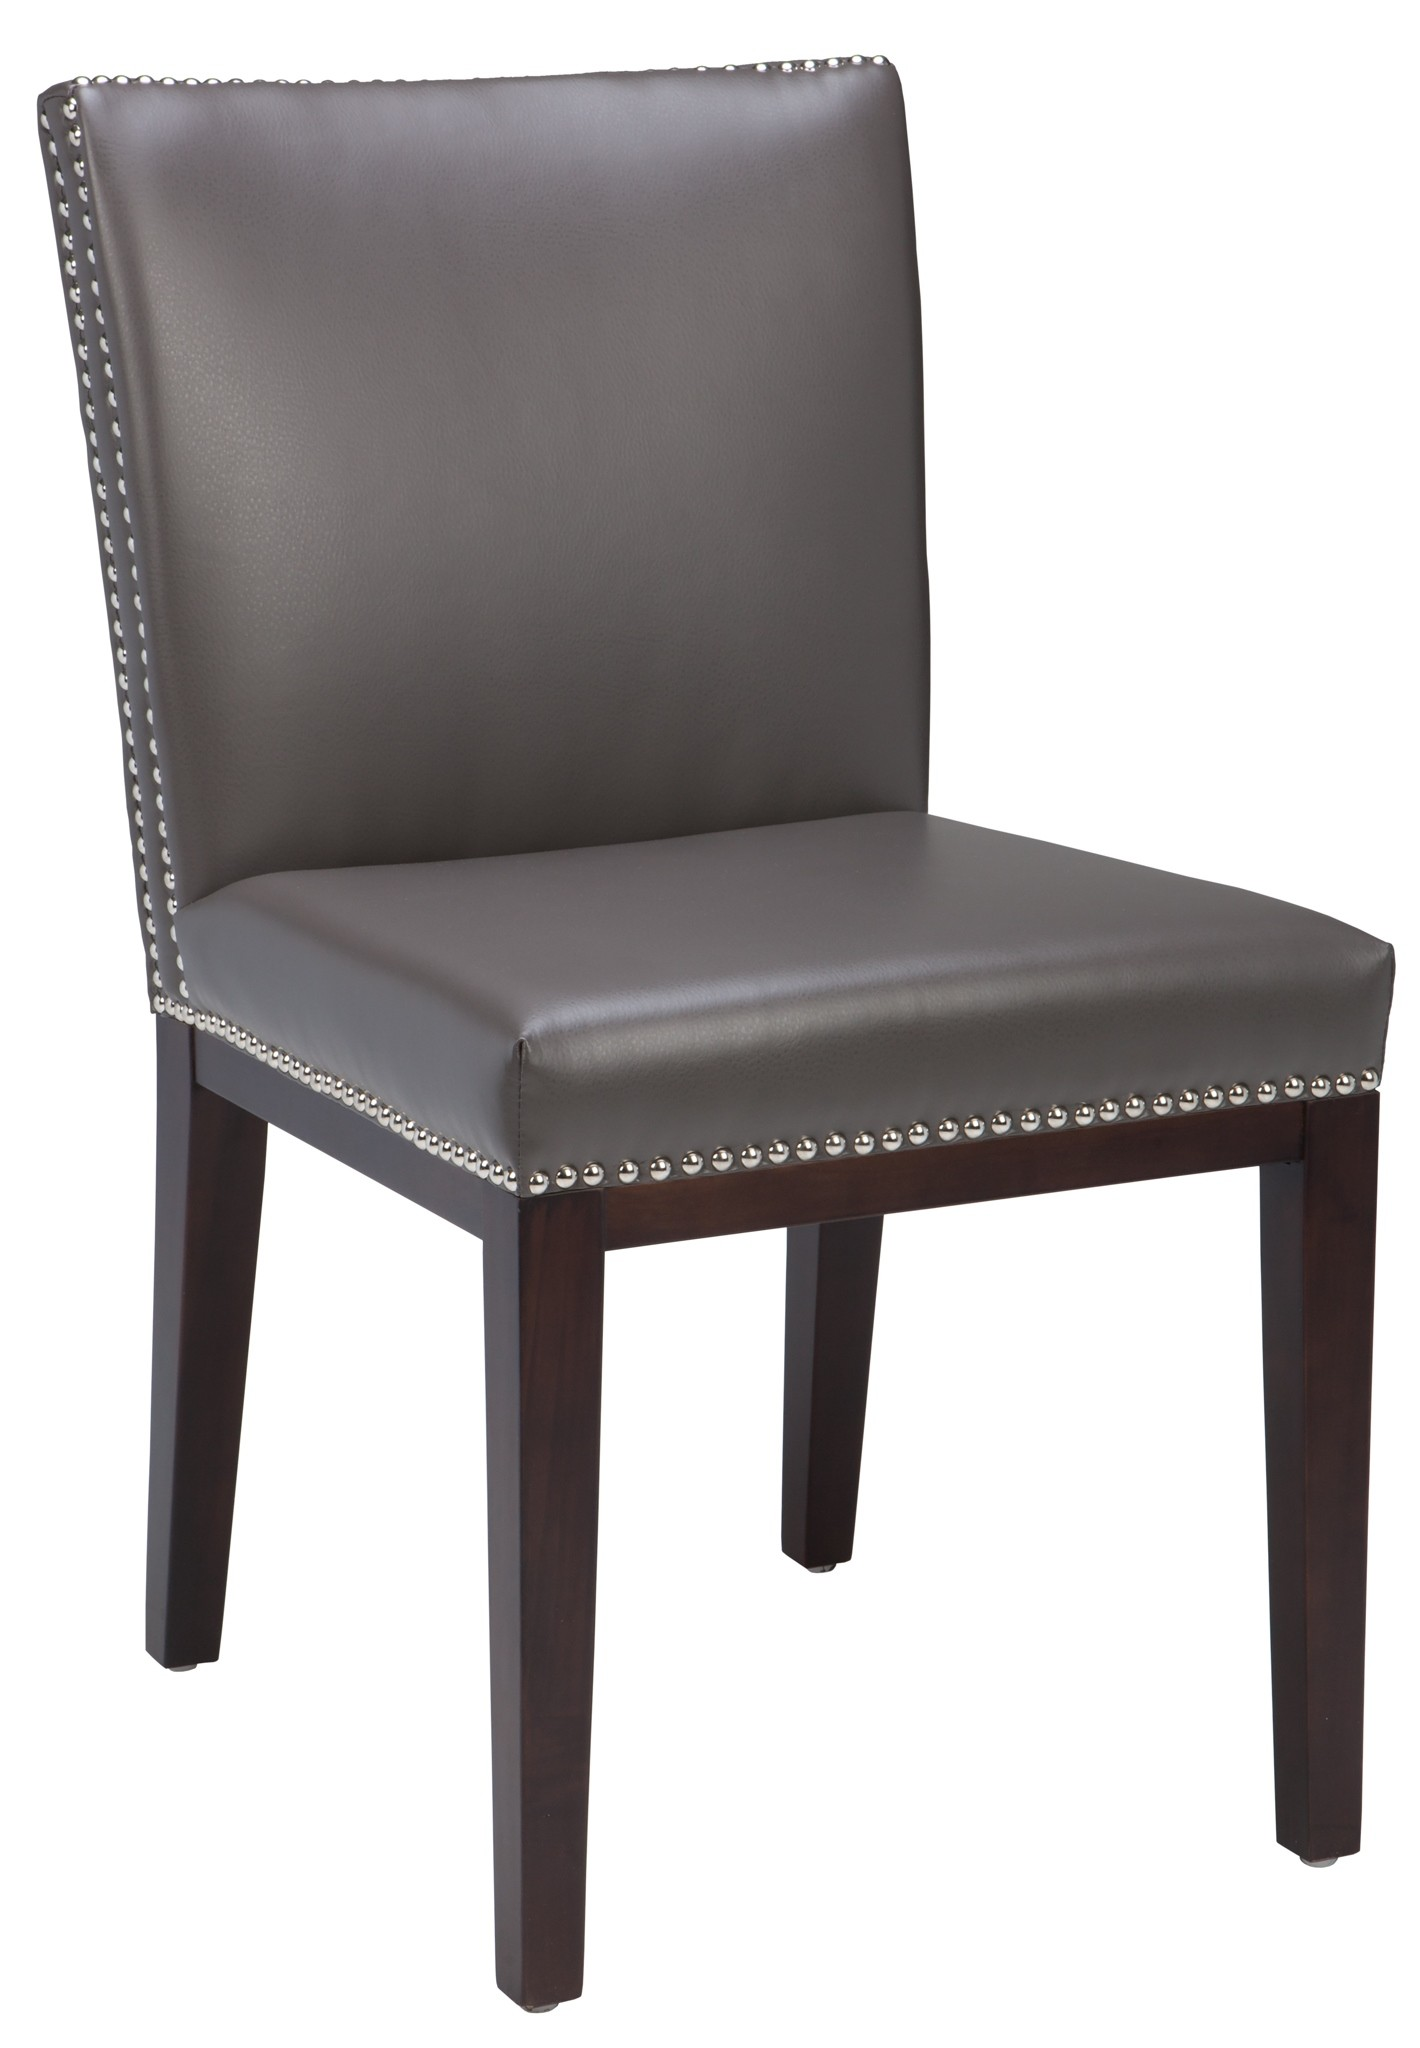 Gray Leather Dining Chairs christopher knight home taylor grey